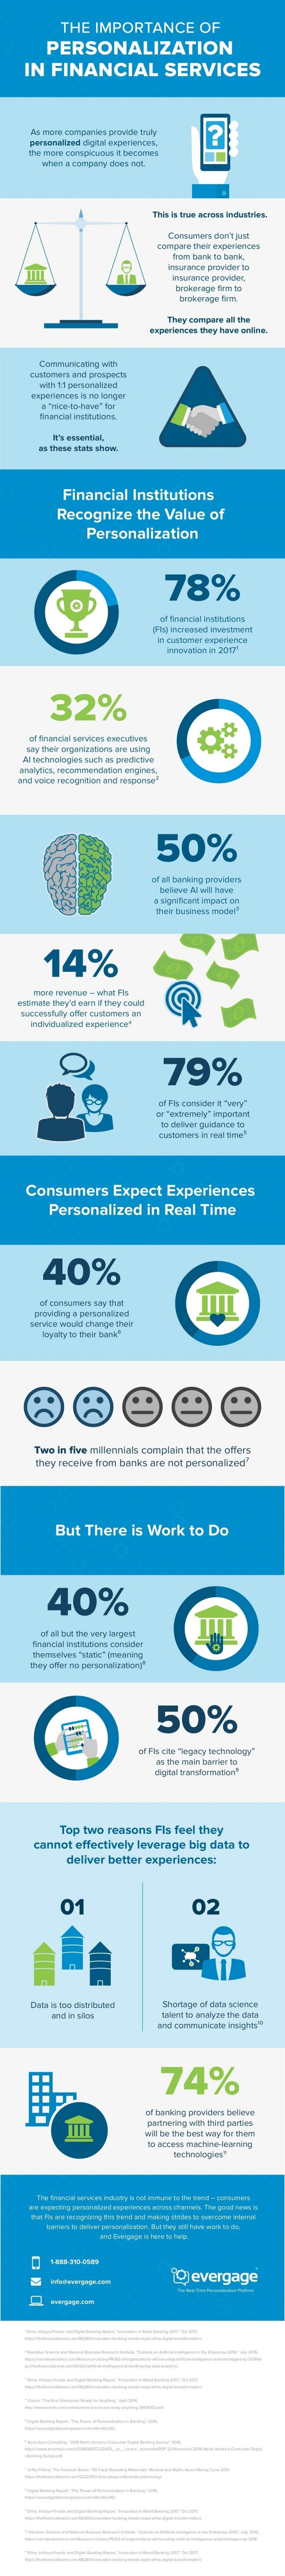 The Importance of Personalization in Financial Services